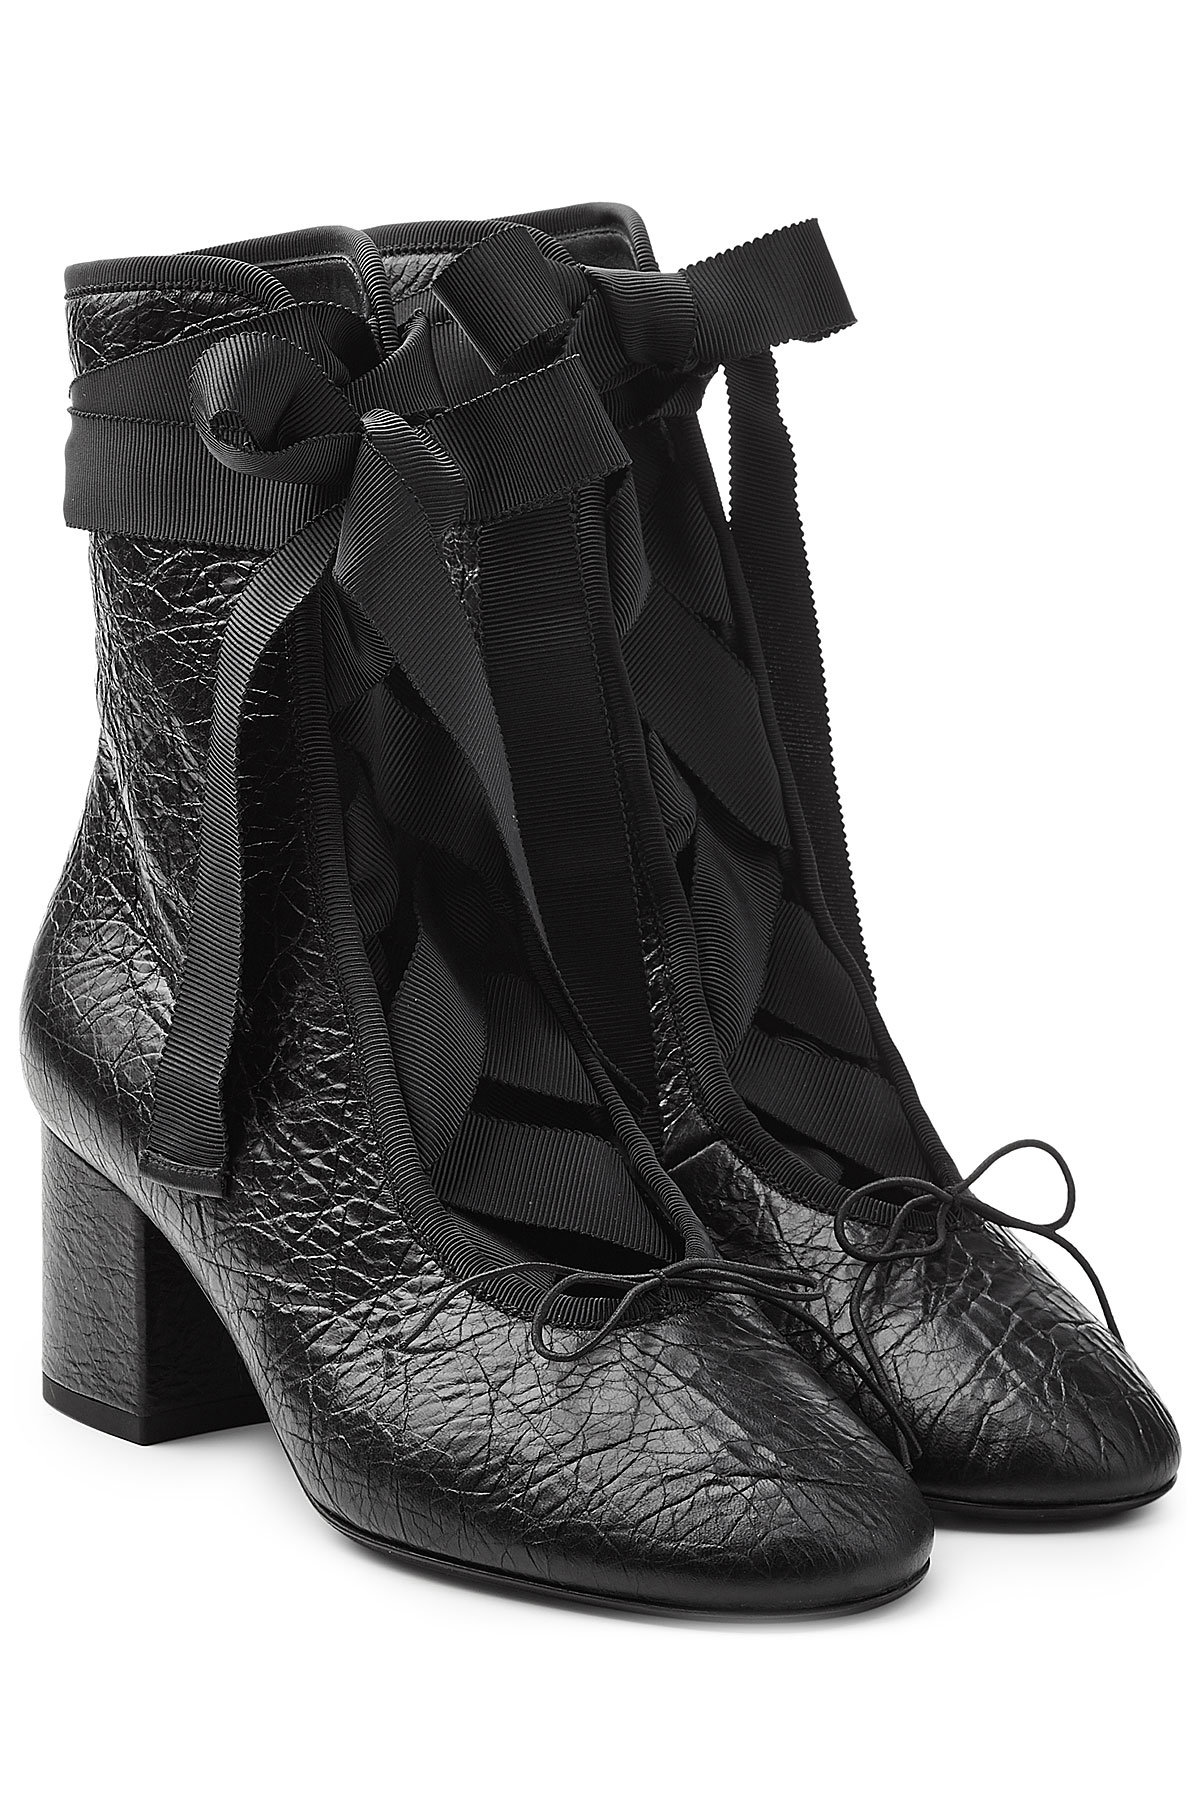 Valentino Leather Ankle Boots with Grosgrain Ribbon Gr. IT 38 GTVbi8